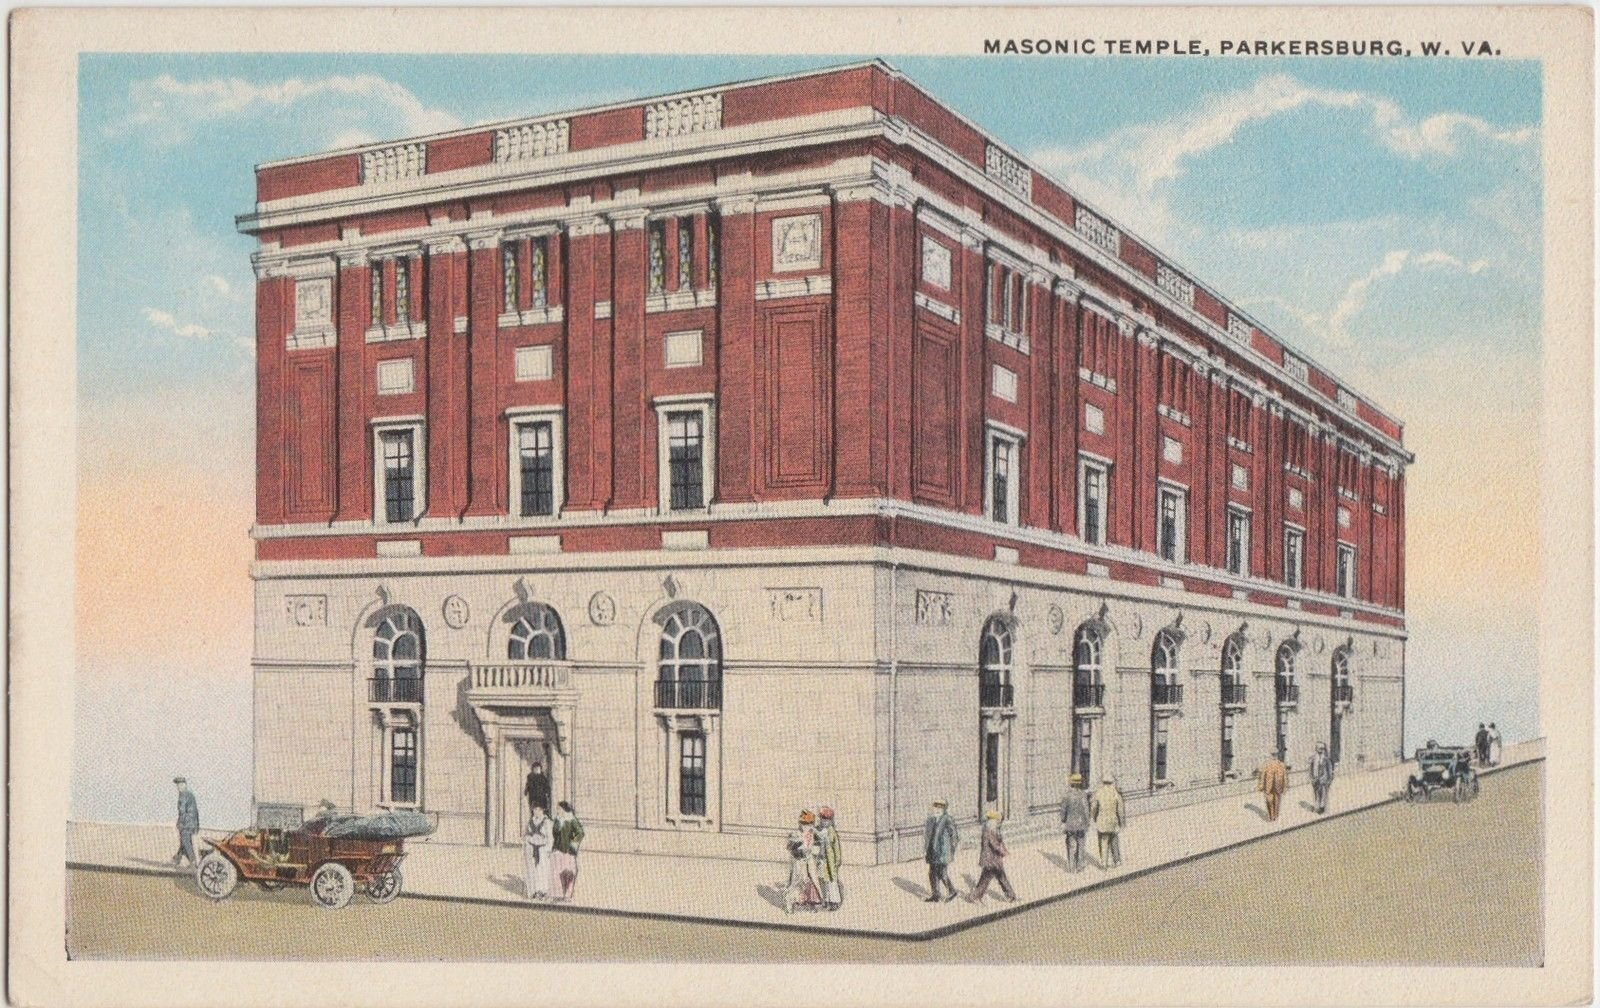 A postcard of the Masonic Temple from the 1910s.